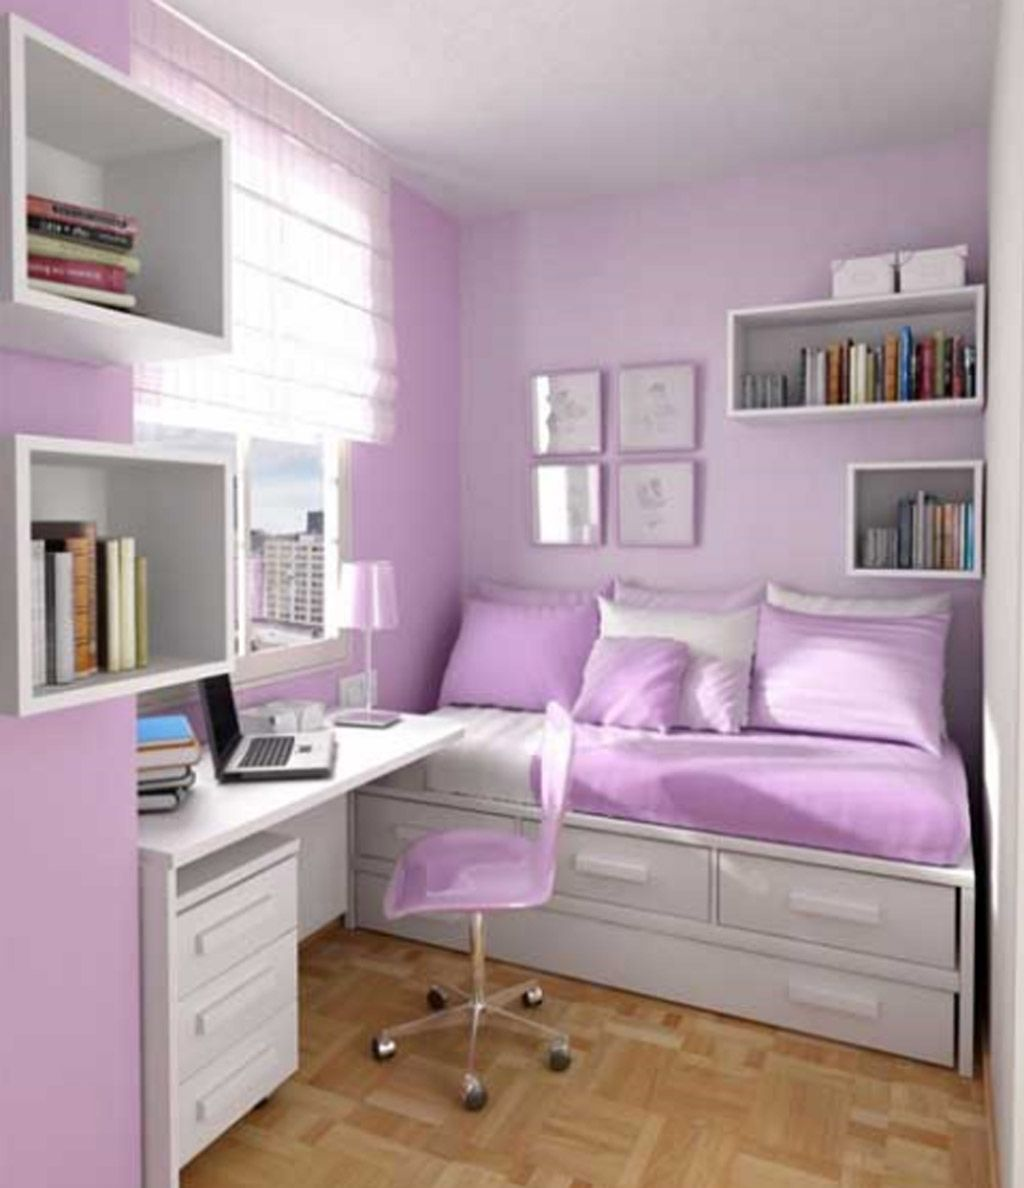 Decor For Teenage Bedrooms | Bedrooms | Girl bedroom designs, Small ...